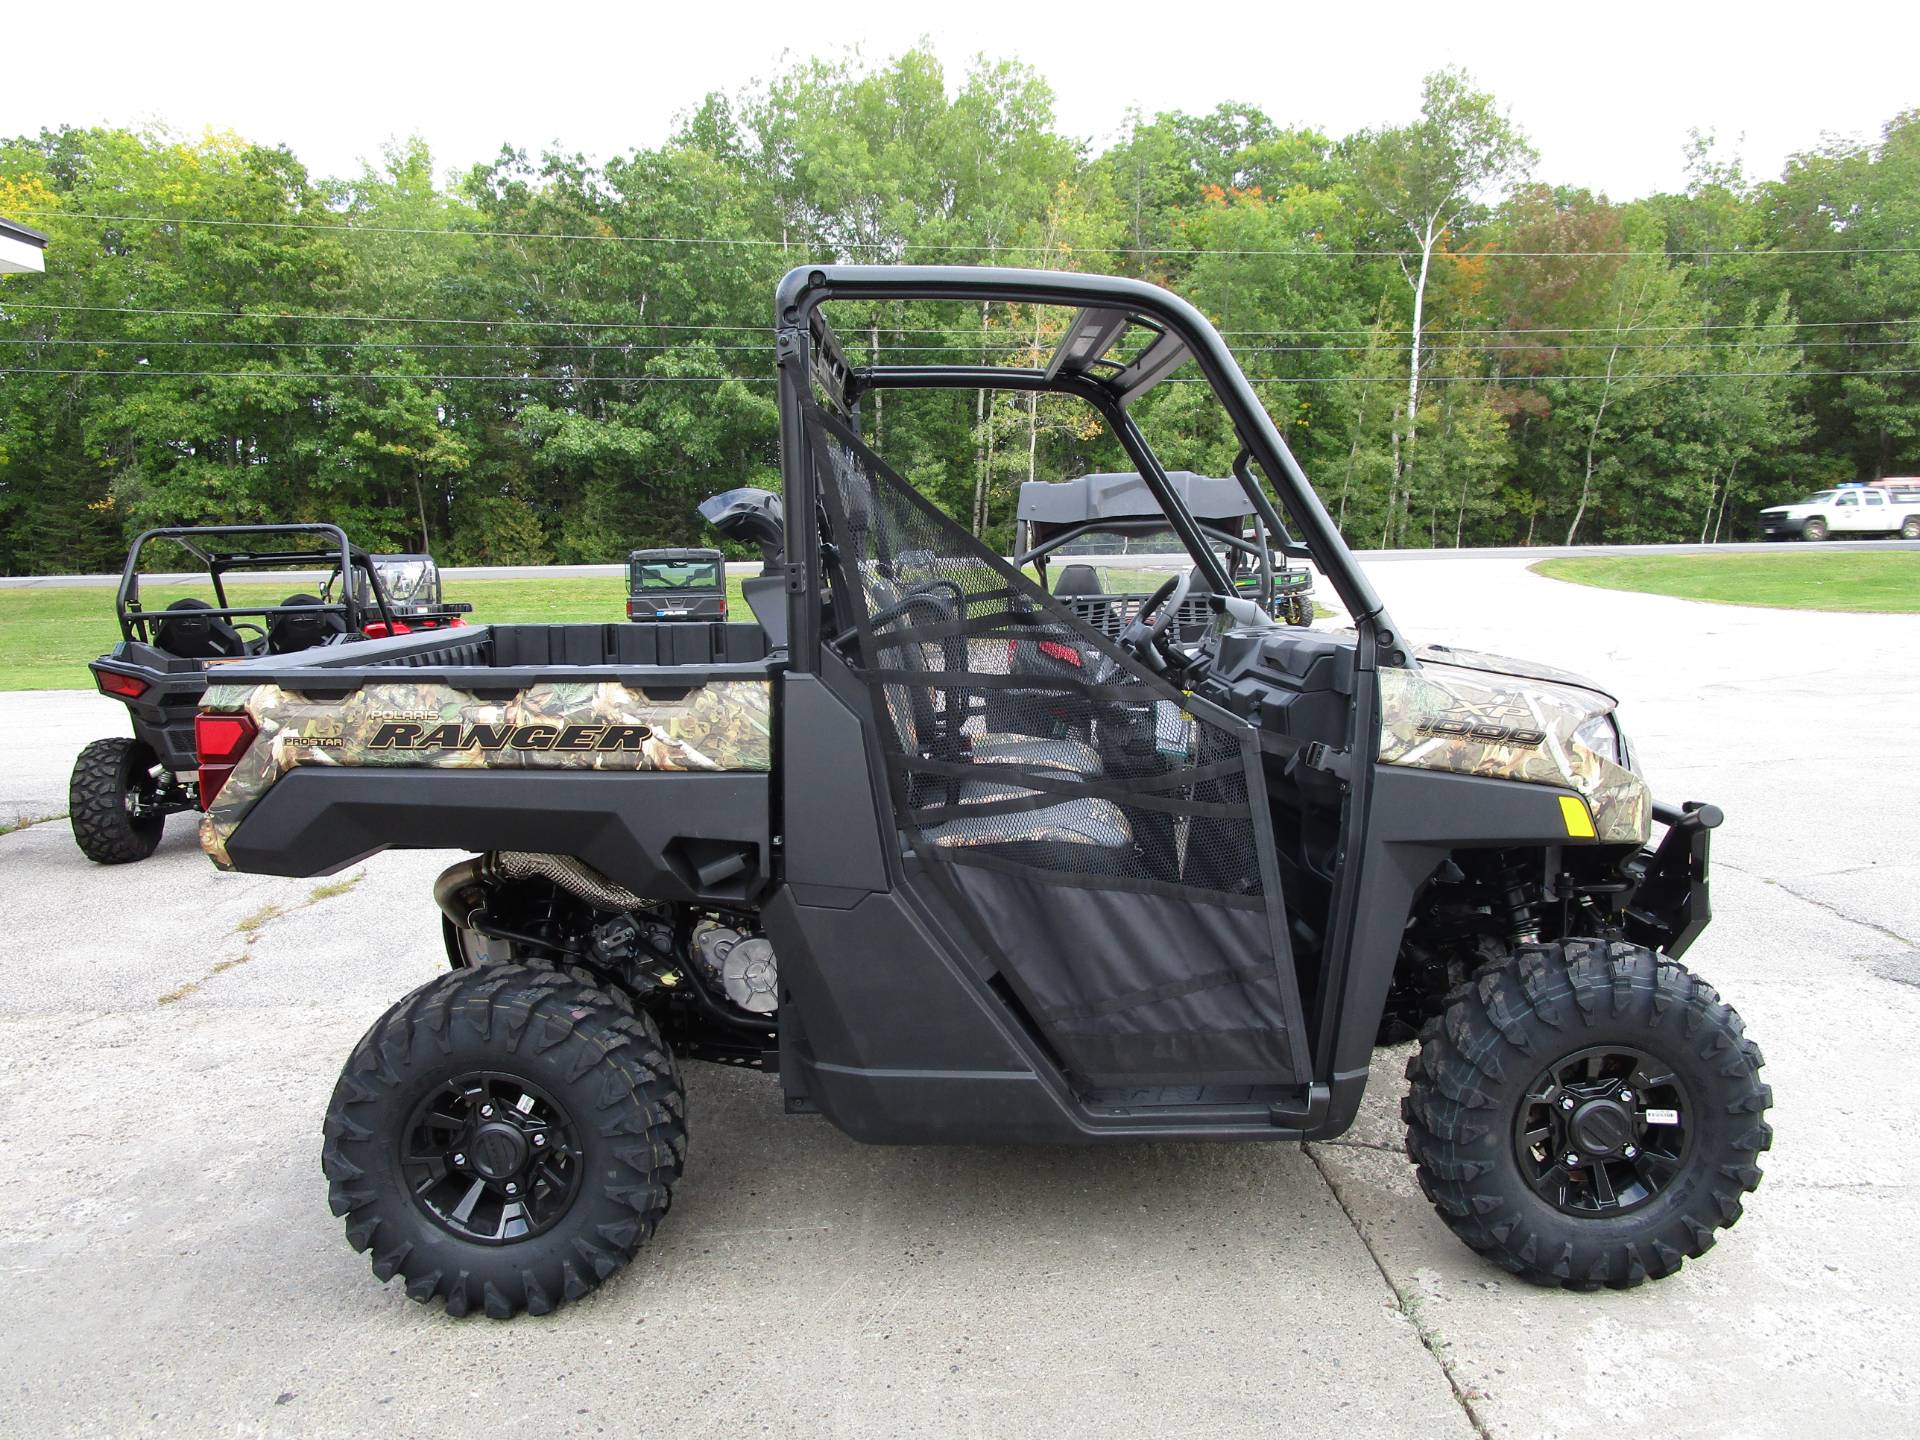 2019 Polaris RANGER XP 1000 BACK COUNTRY CAMO LIMITED EDITION in Newport, Maine - Photo 1